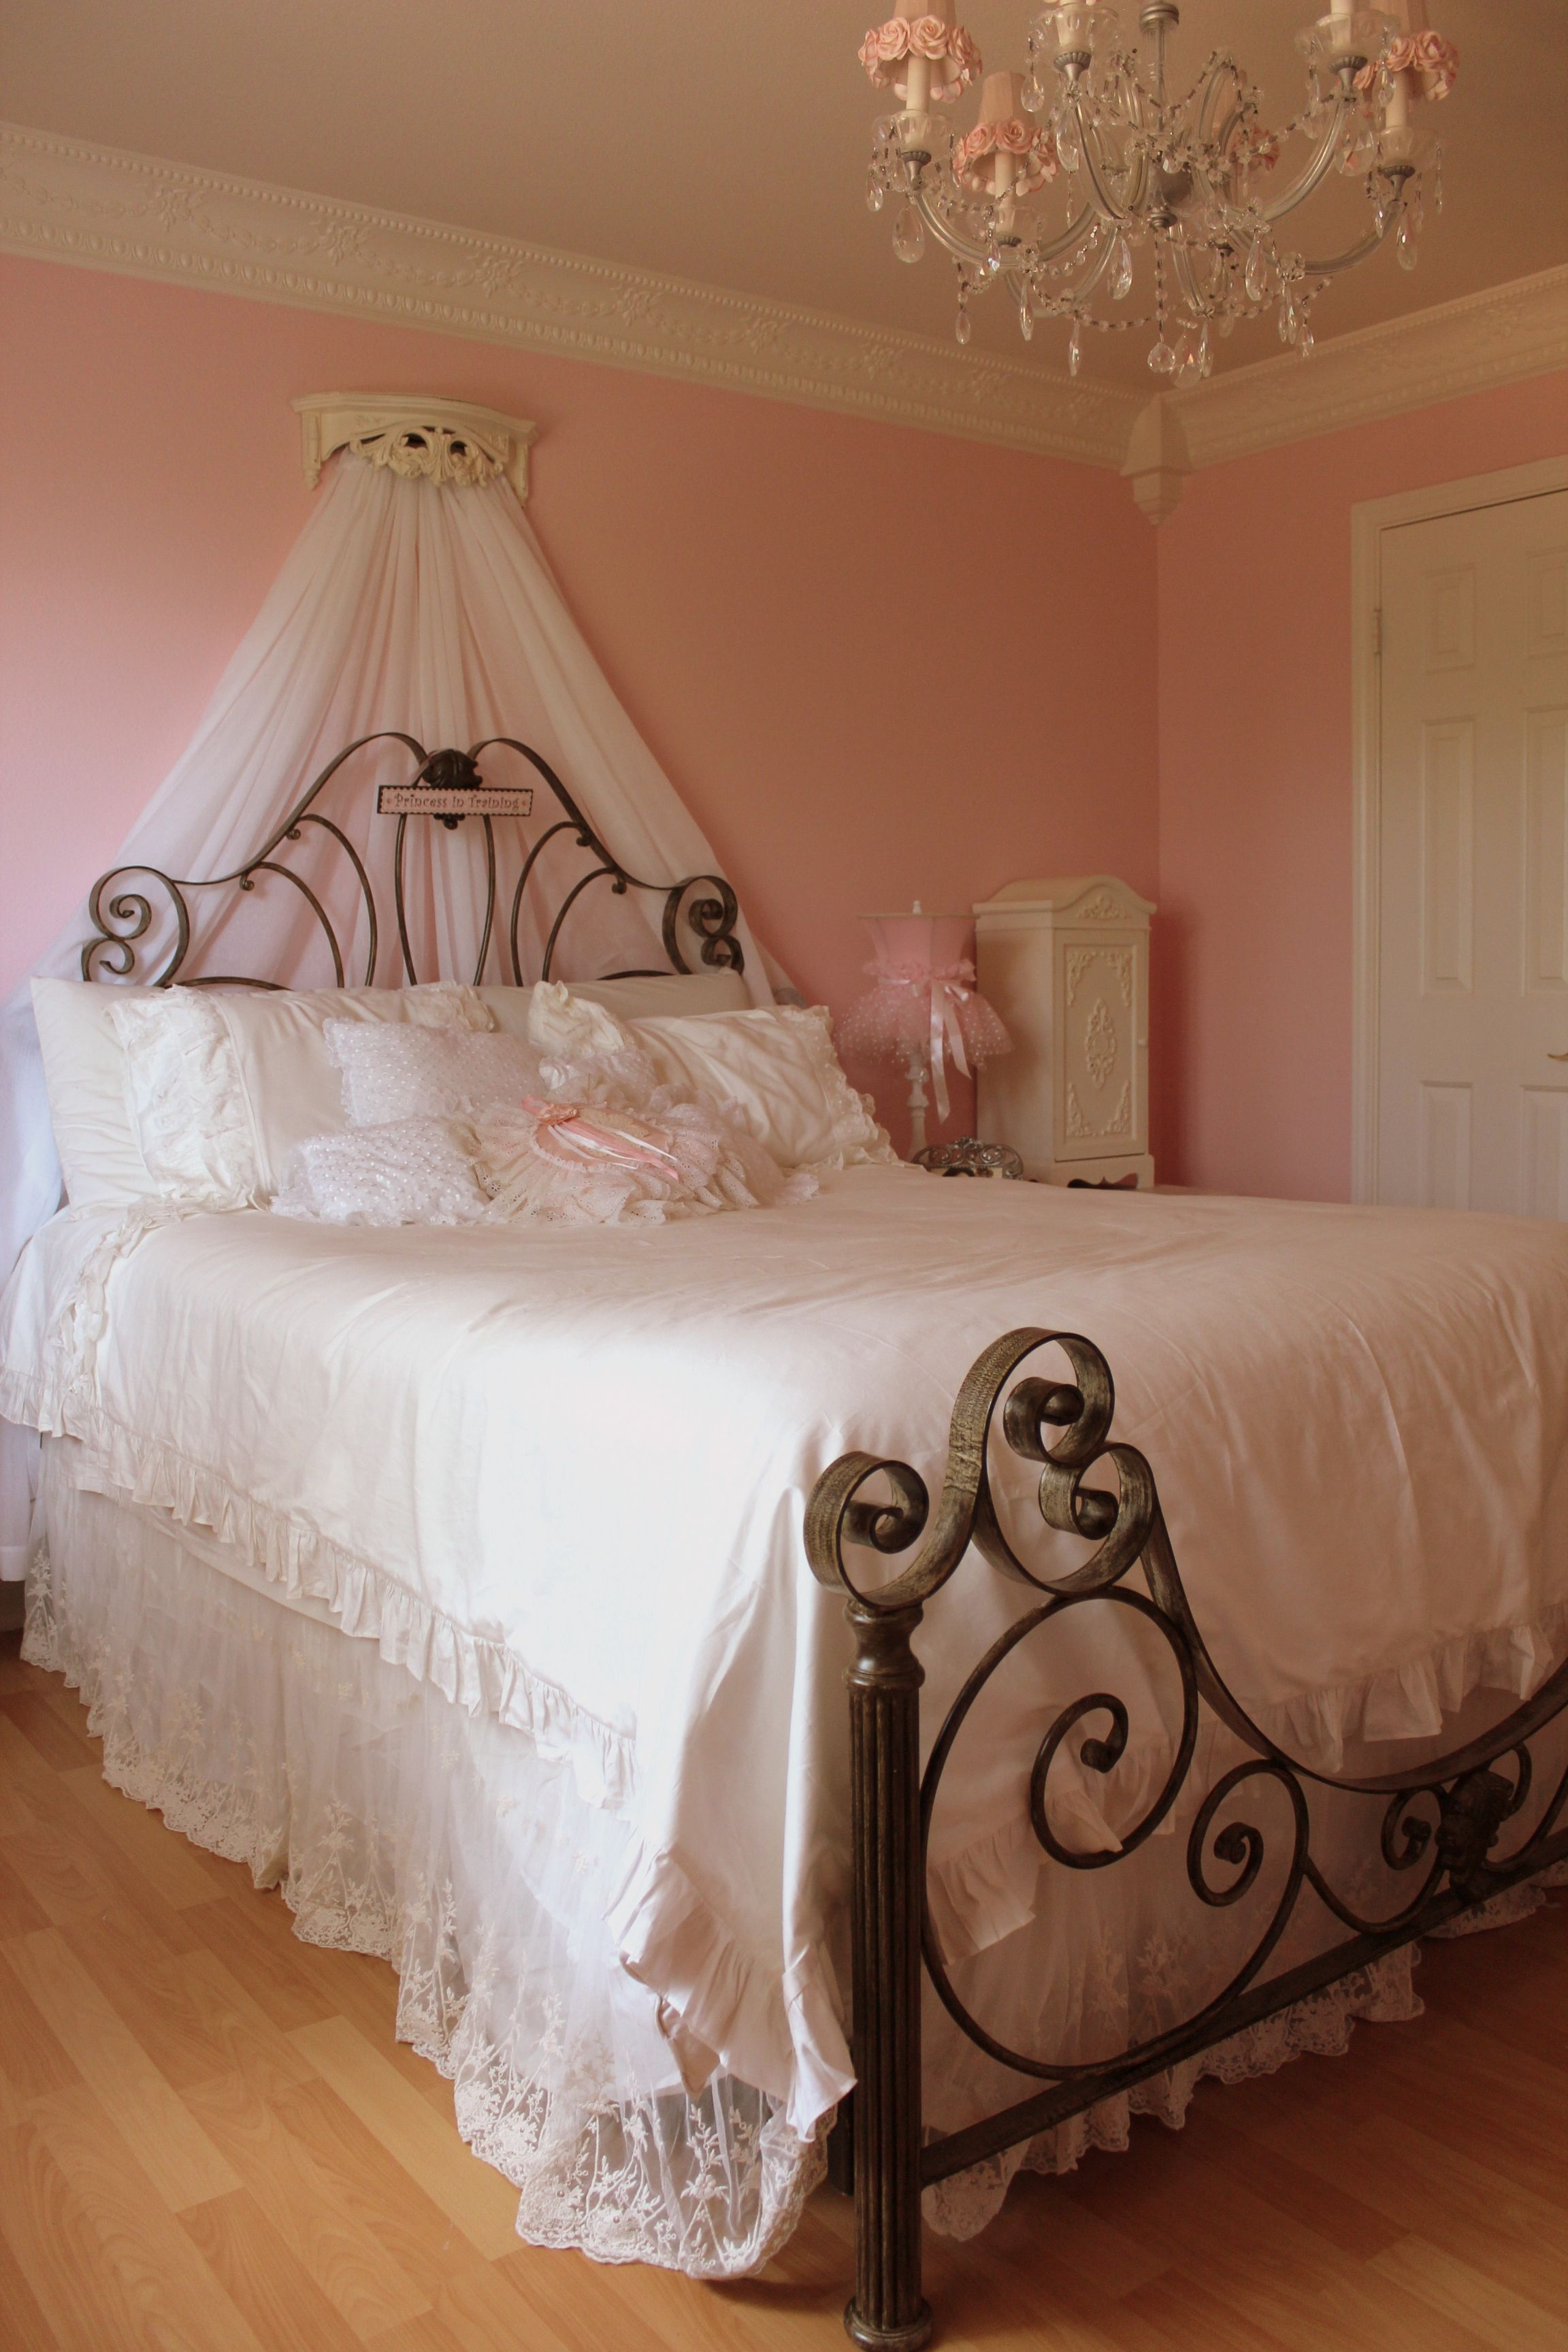 shabby chic girls bedroom too similar to what she has but still cute amariya shabby chic. Black Bedroom Furniture Sets. Home Design Ideas